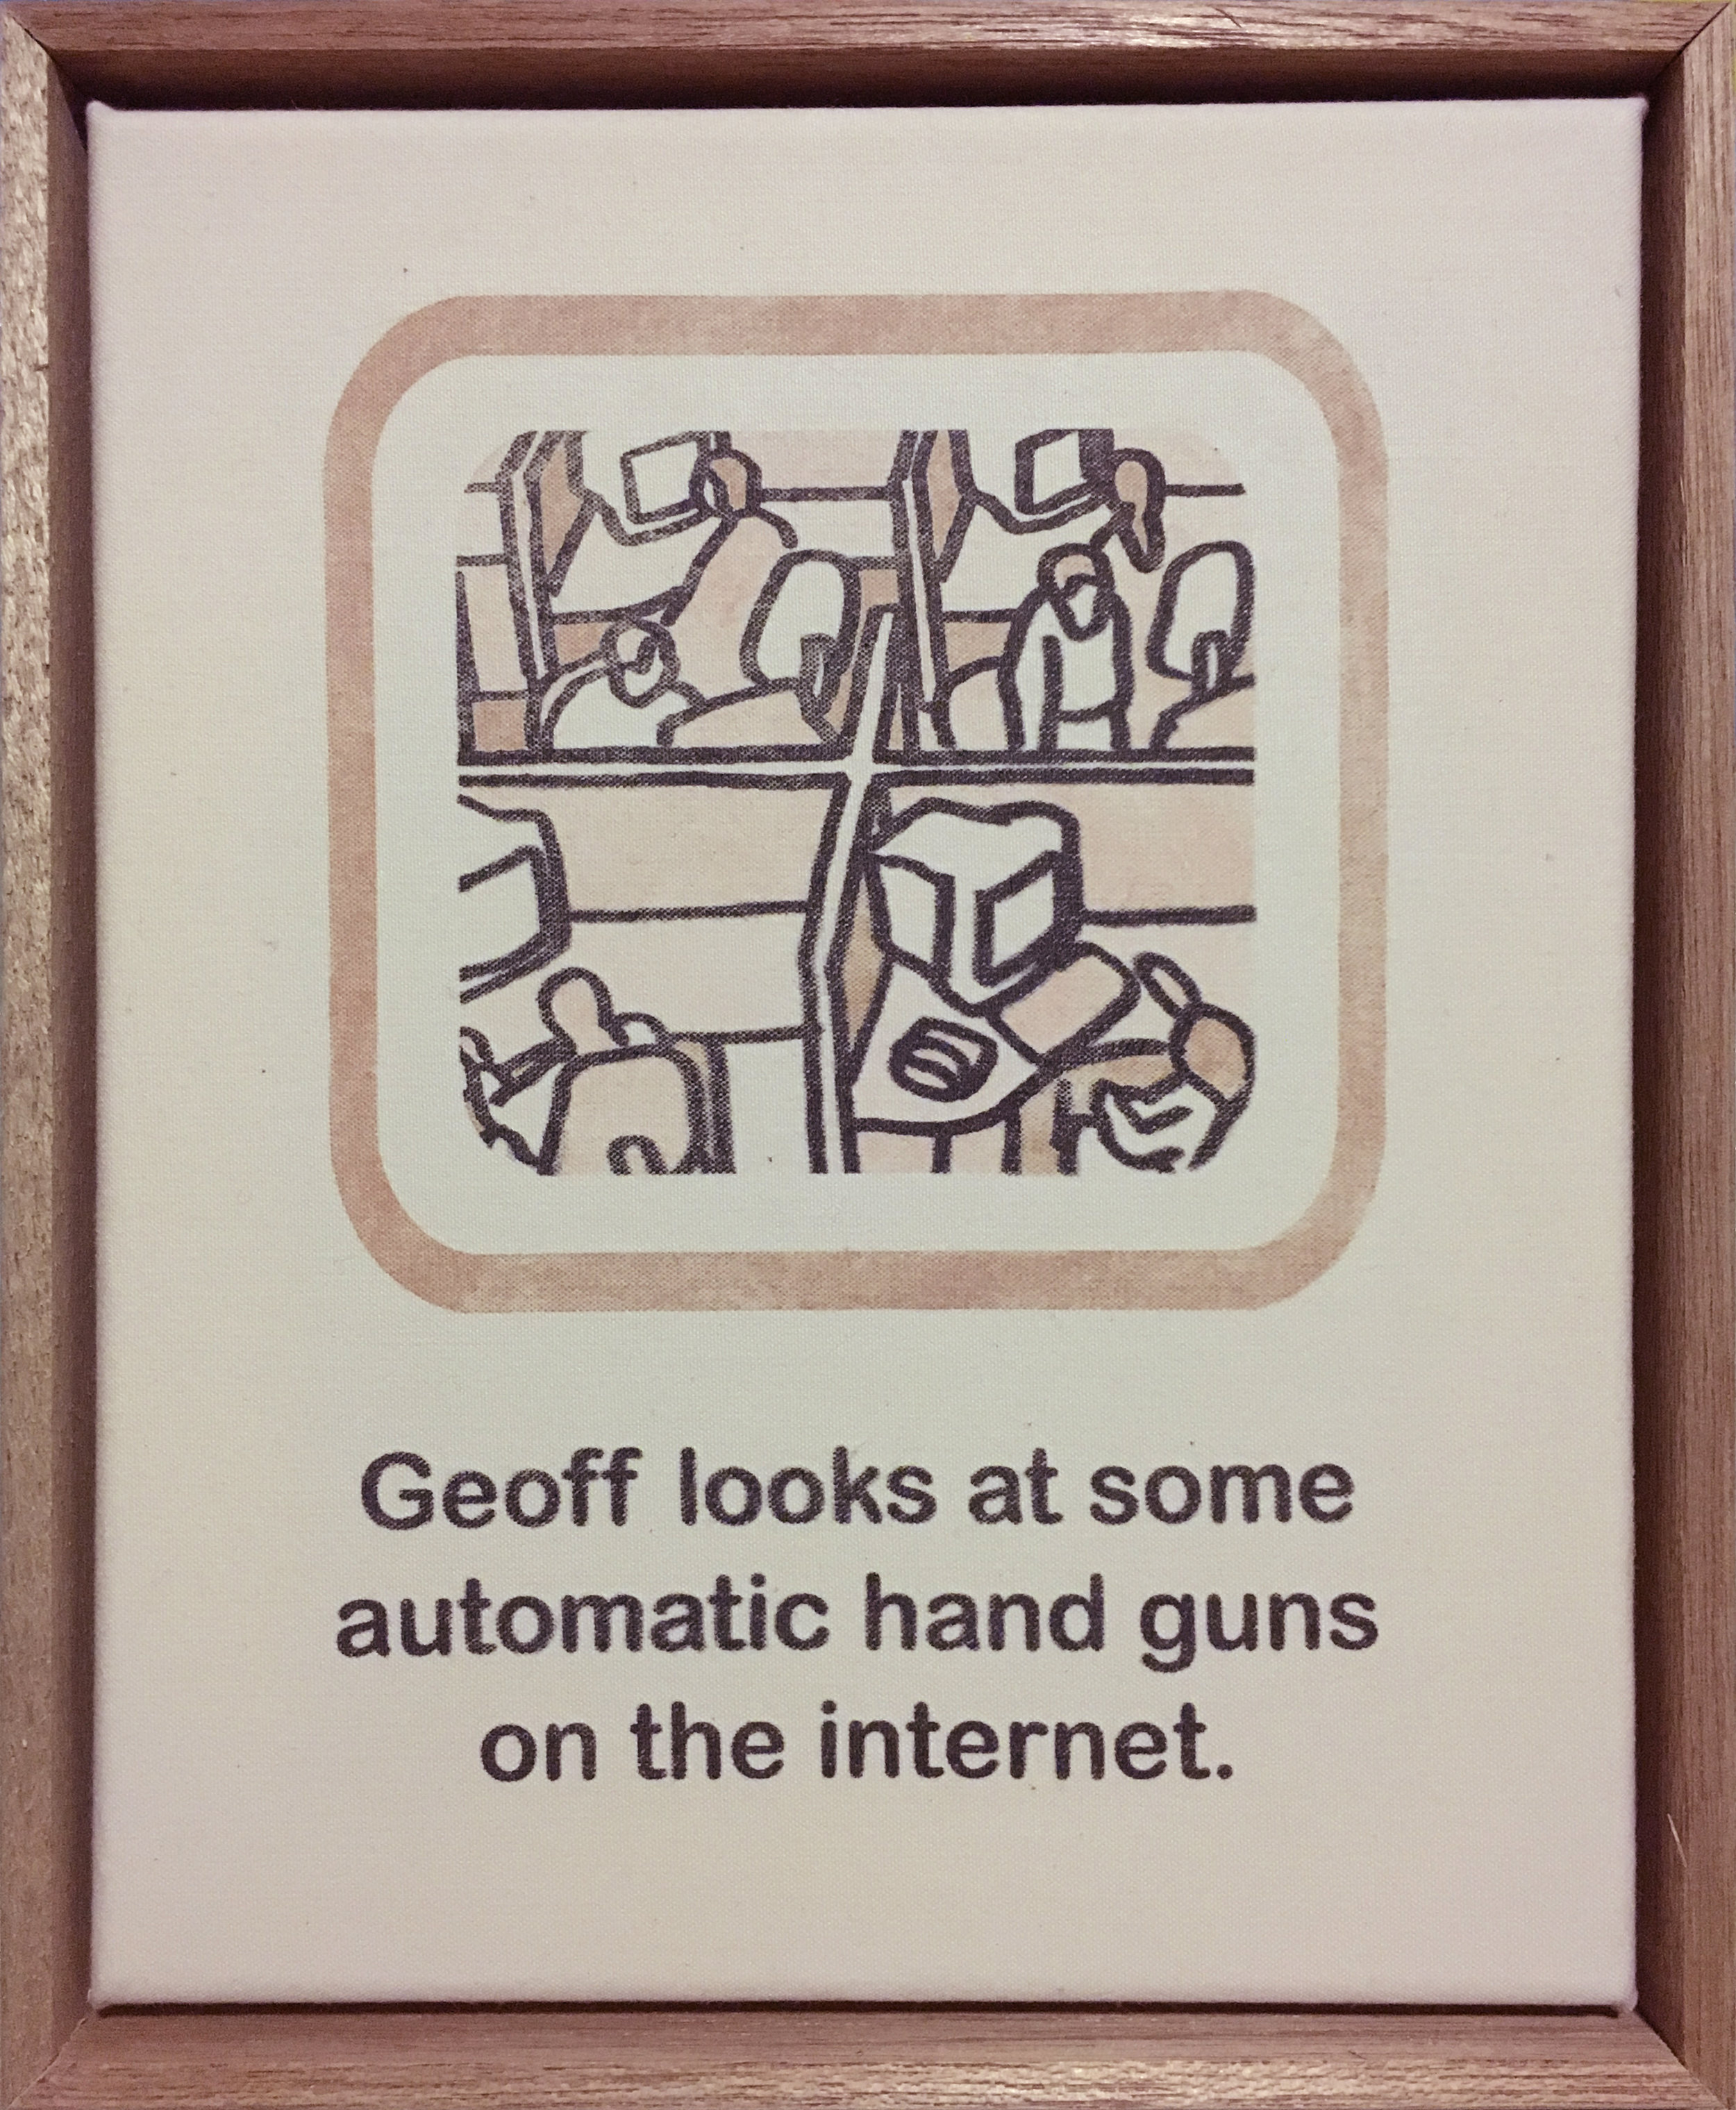 Geoff looks at some automatic hand guns on the internet.